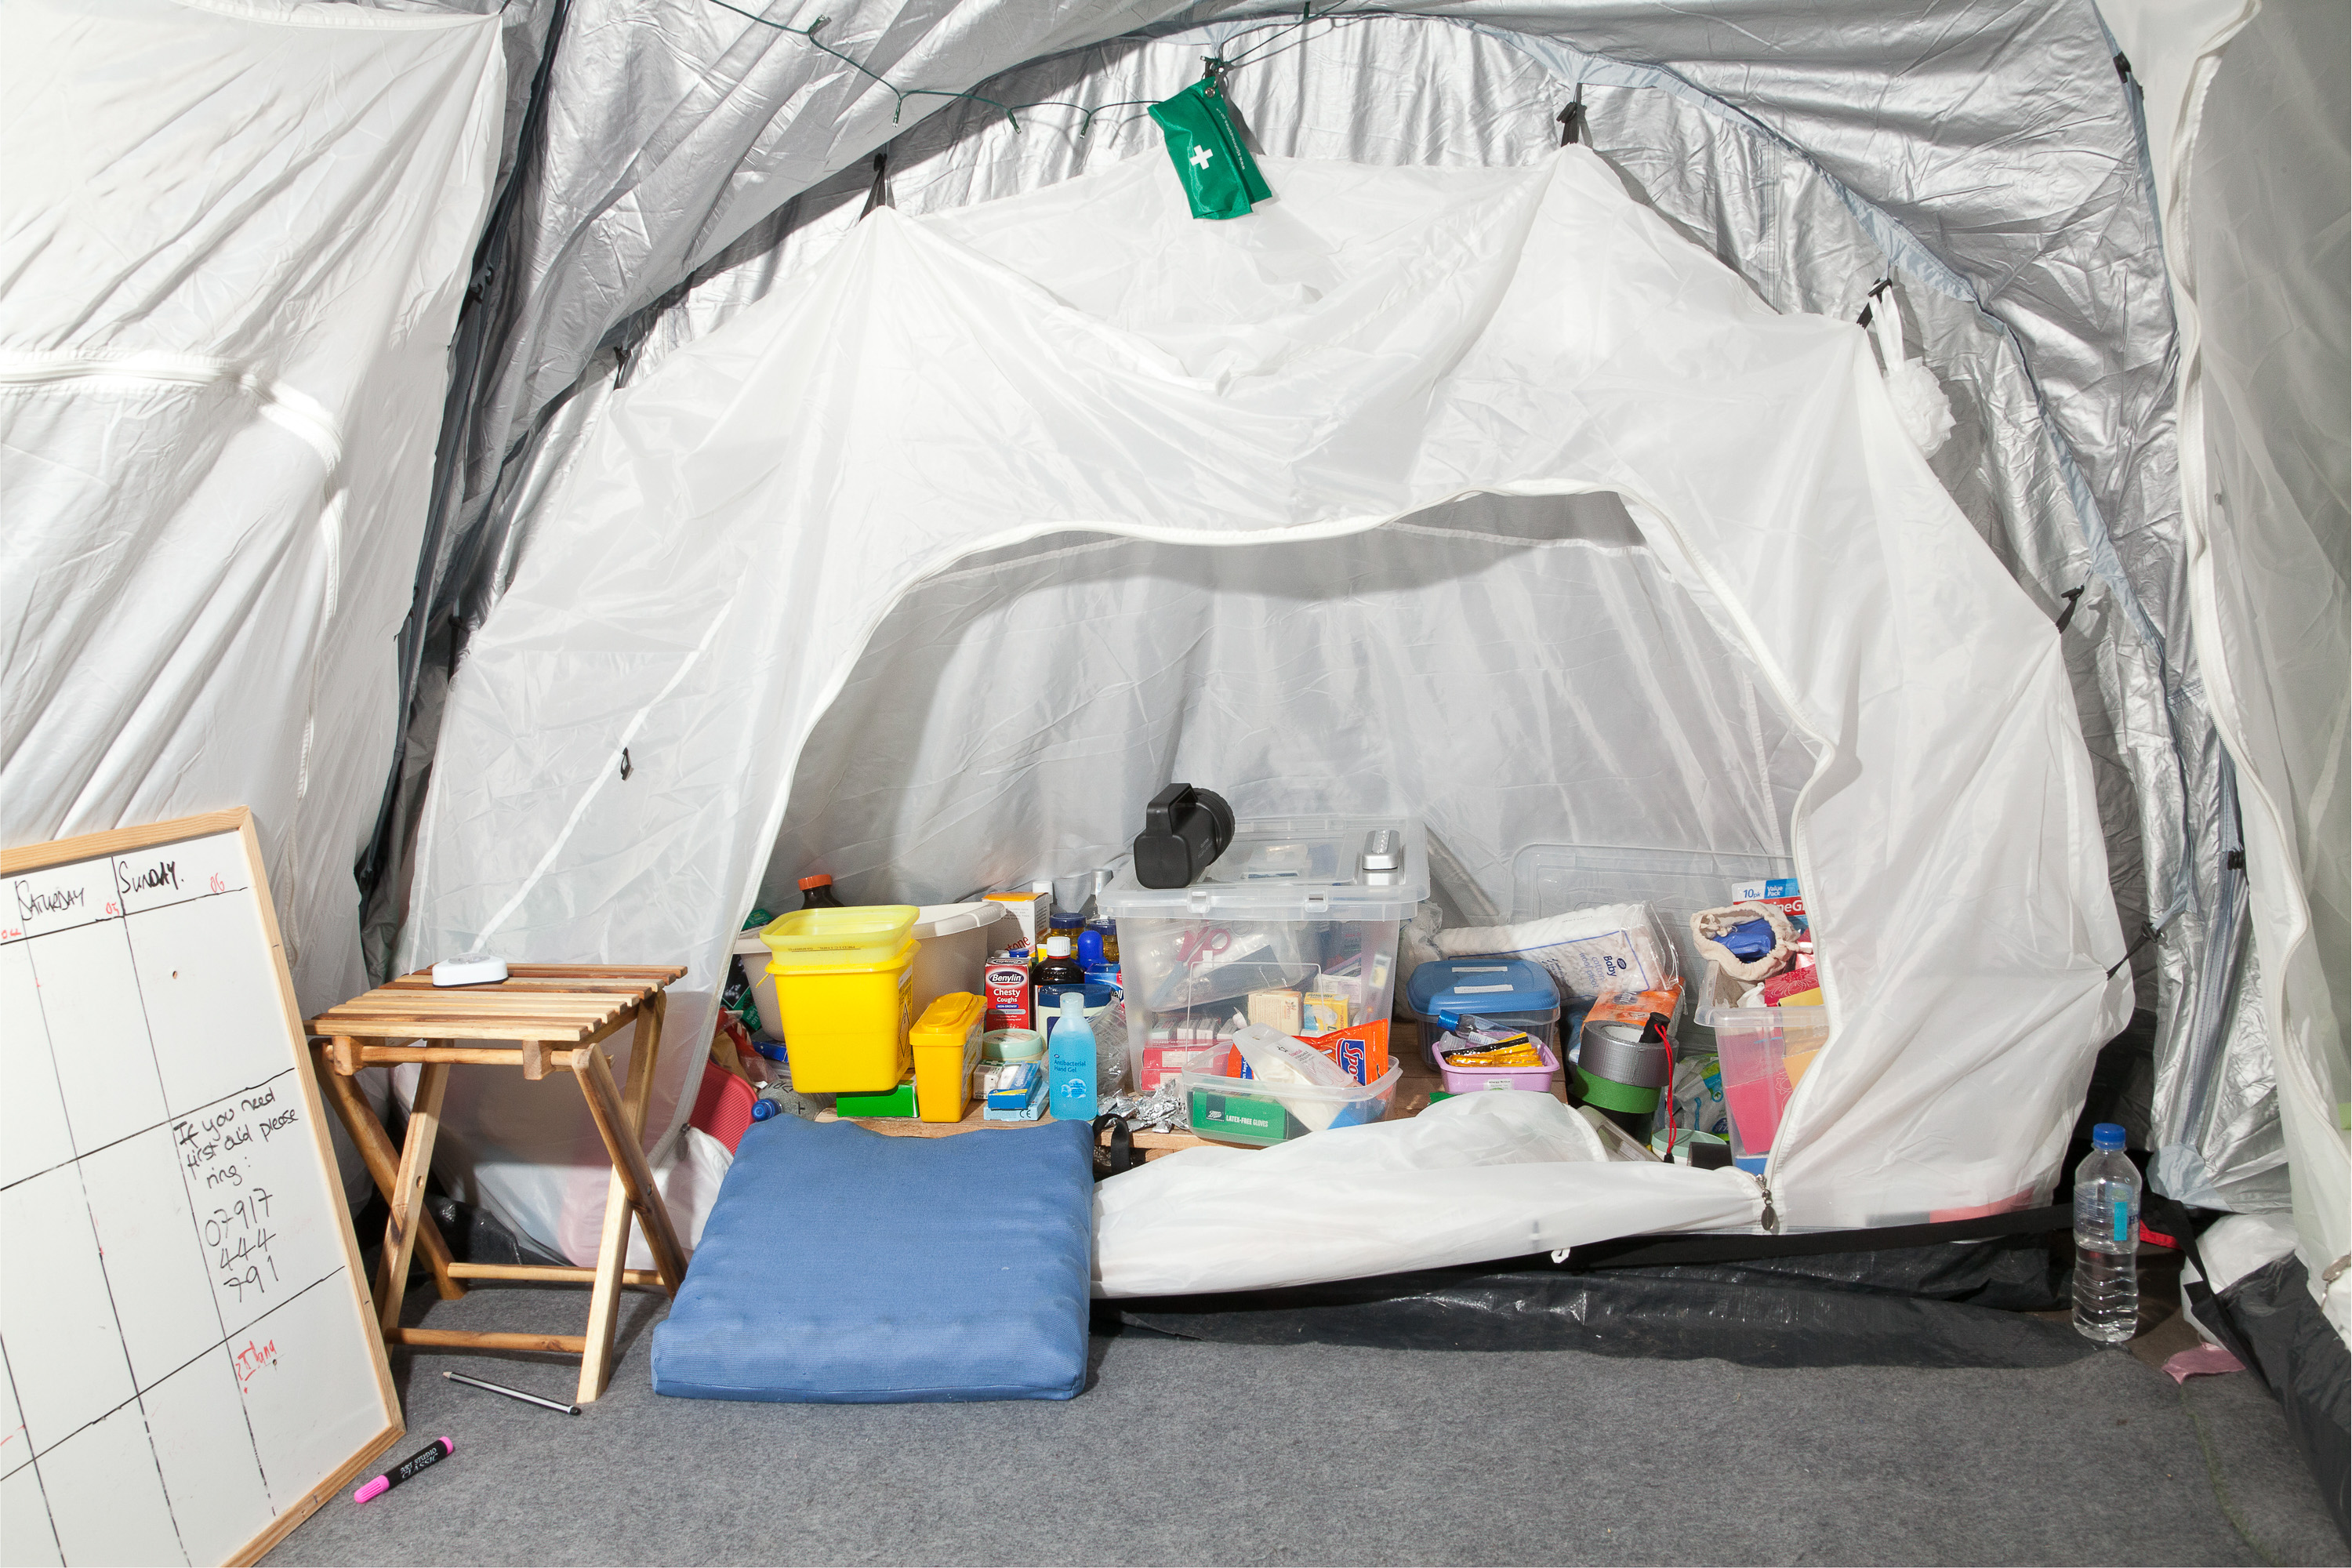 Interior of the First Aid Tent, St. Paul's Camp.